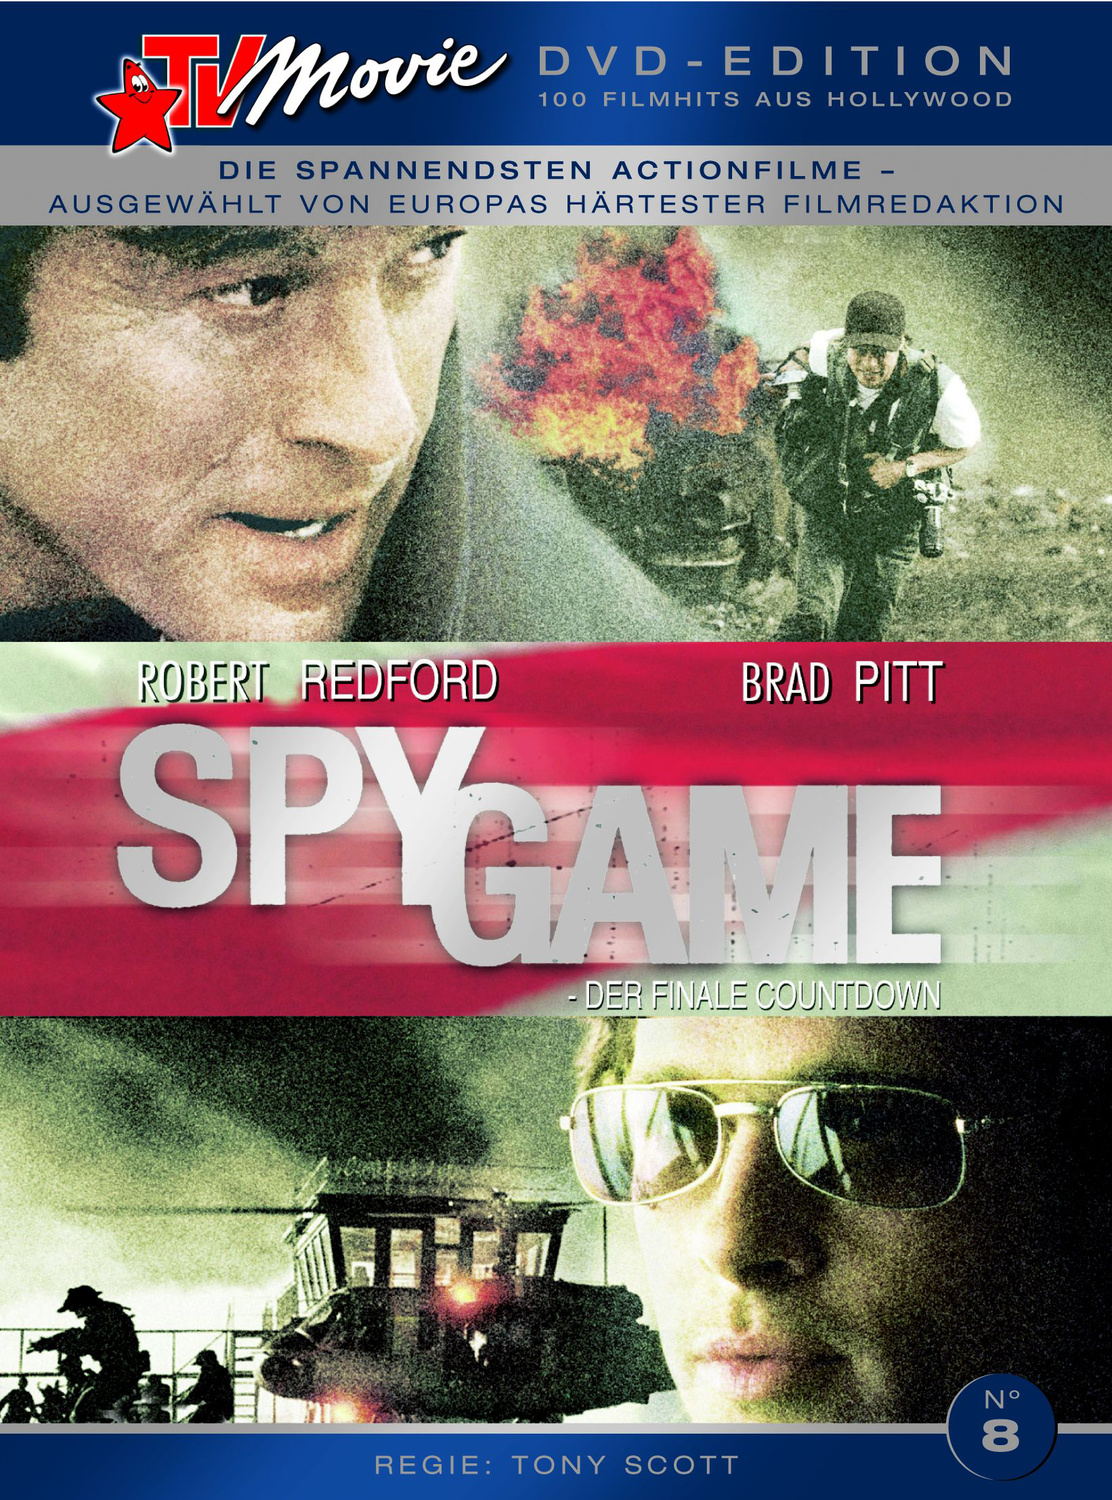 Spy Game - TV Movie Edition